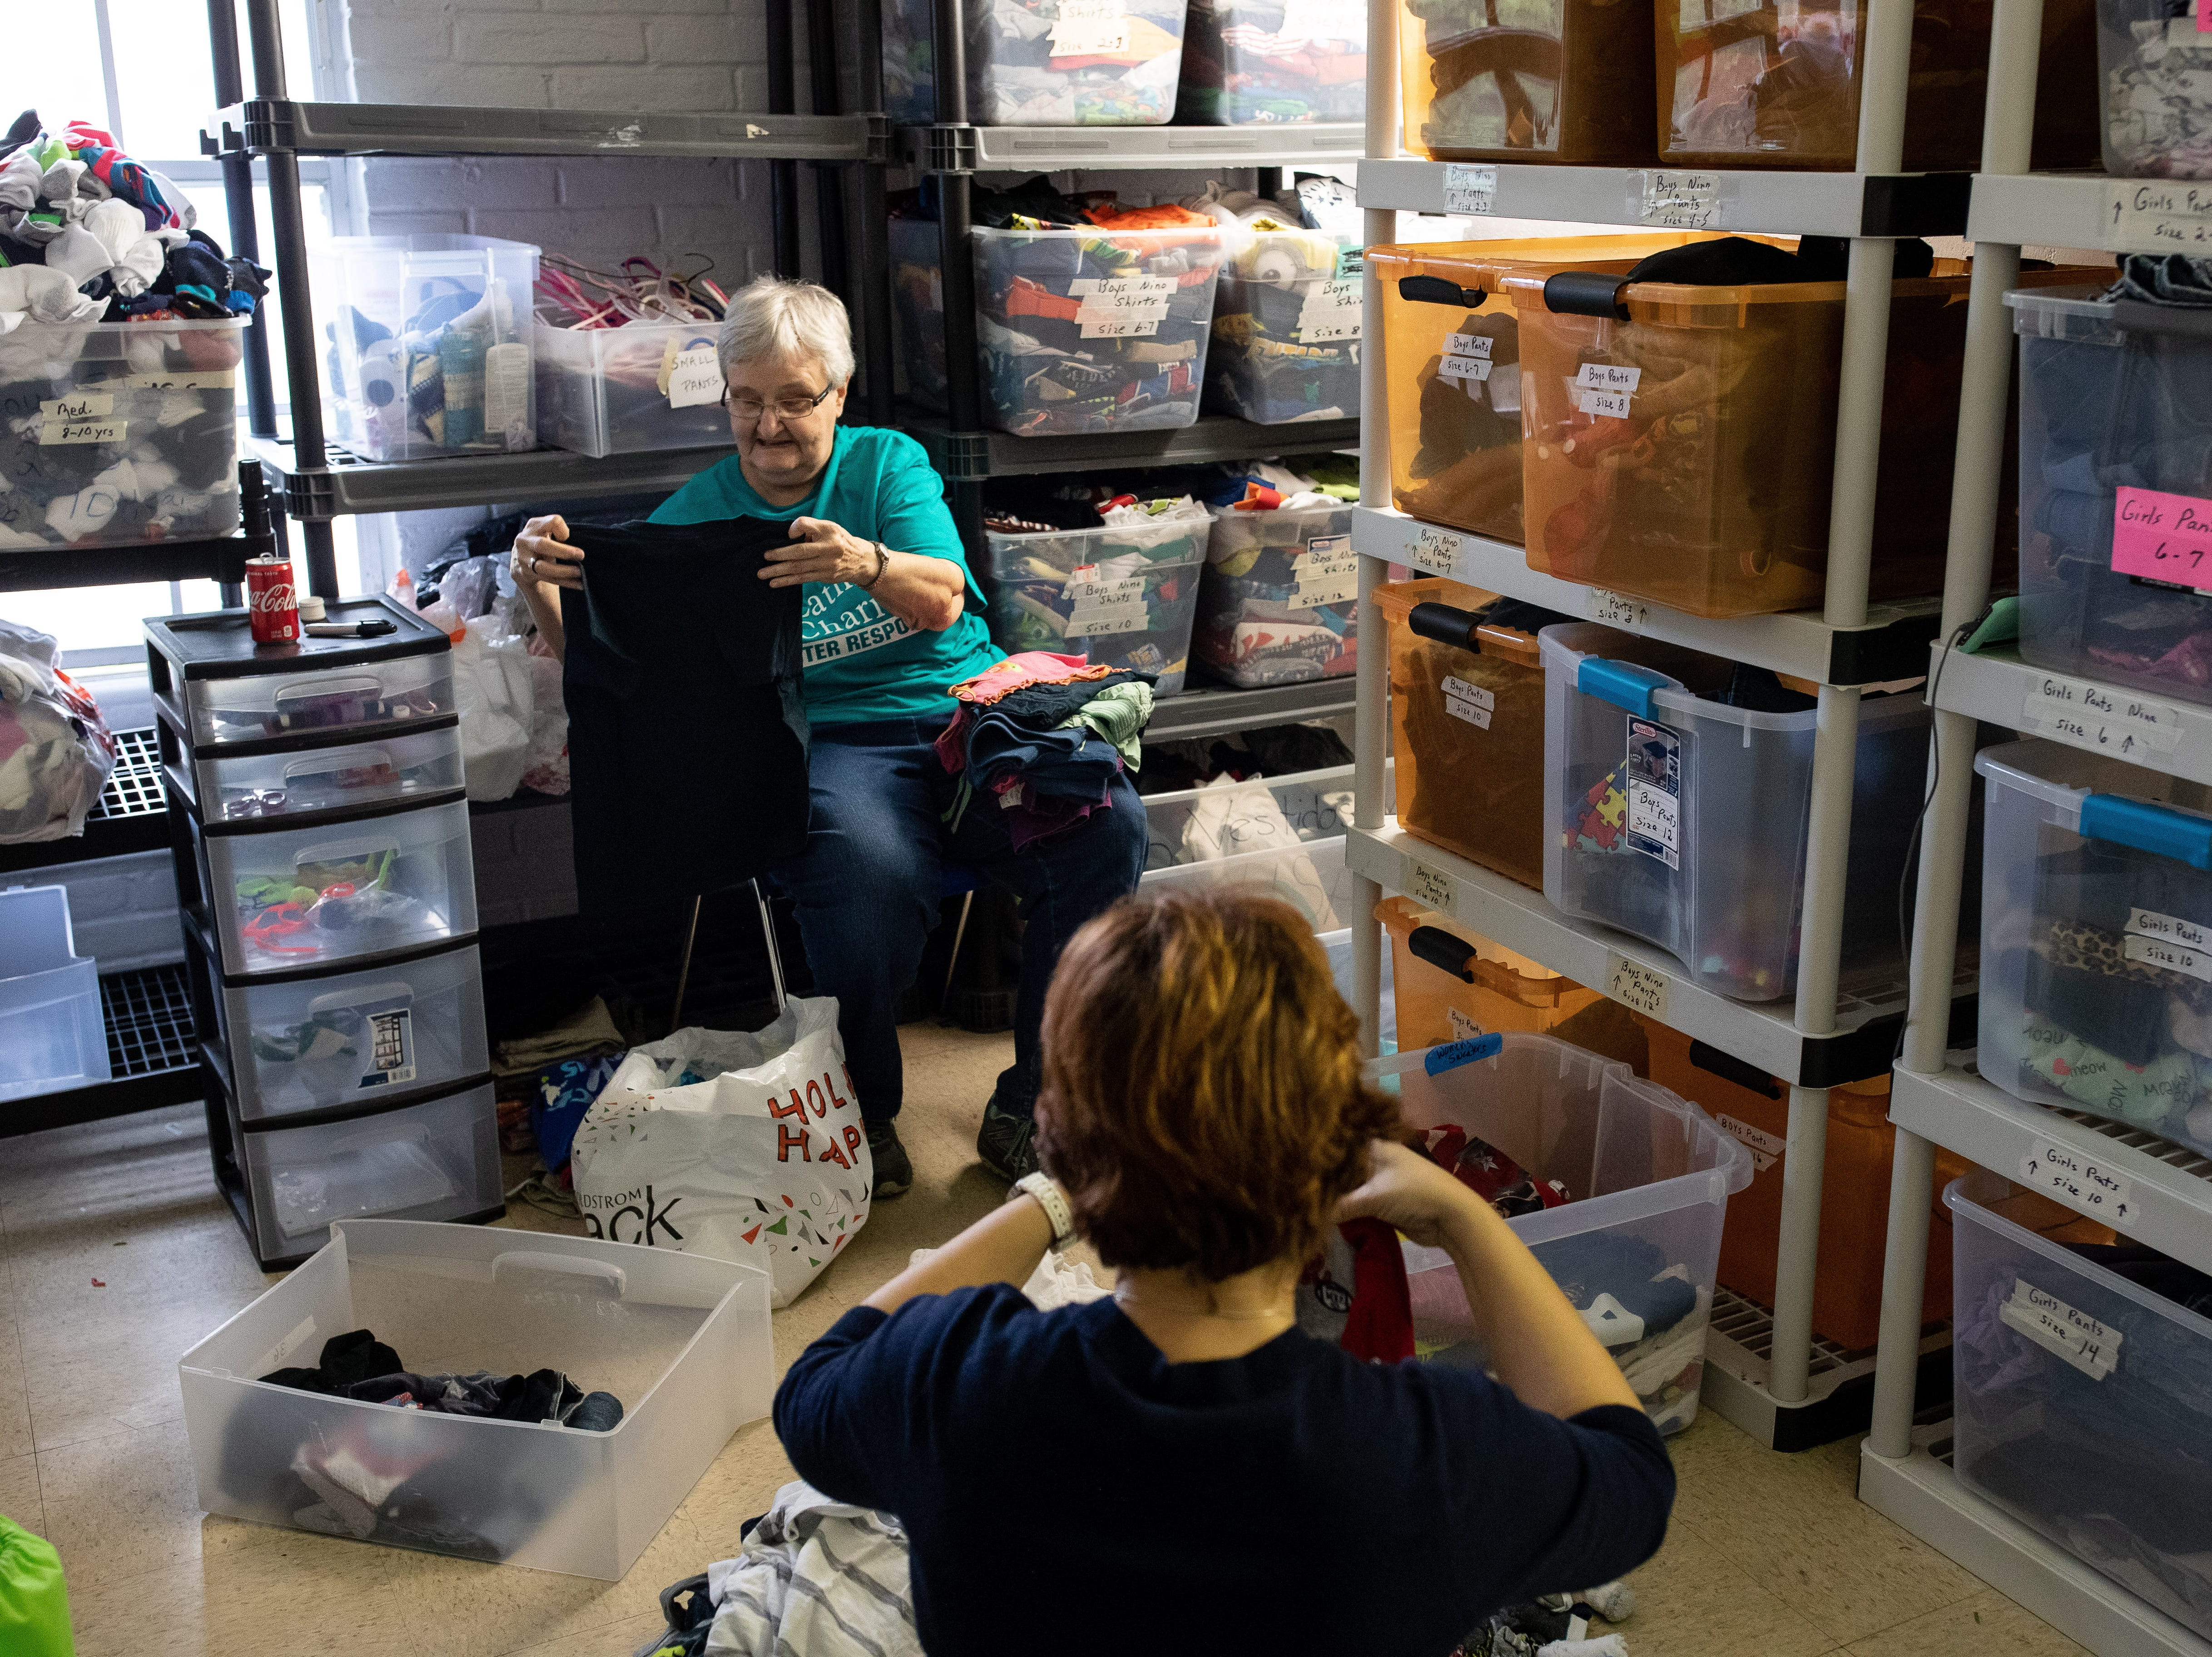 Volunteers at Catholic Charities of the Rio Grande Valley in McAllen, Tx fold donated clothing for migrants on Wednesday, Jan. 9, 2019.